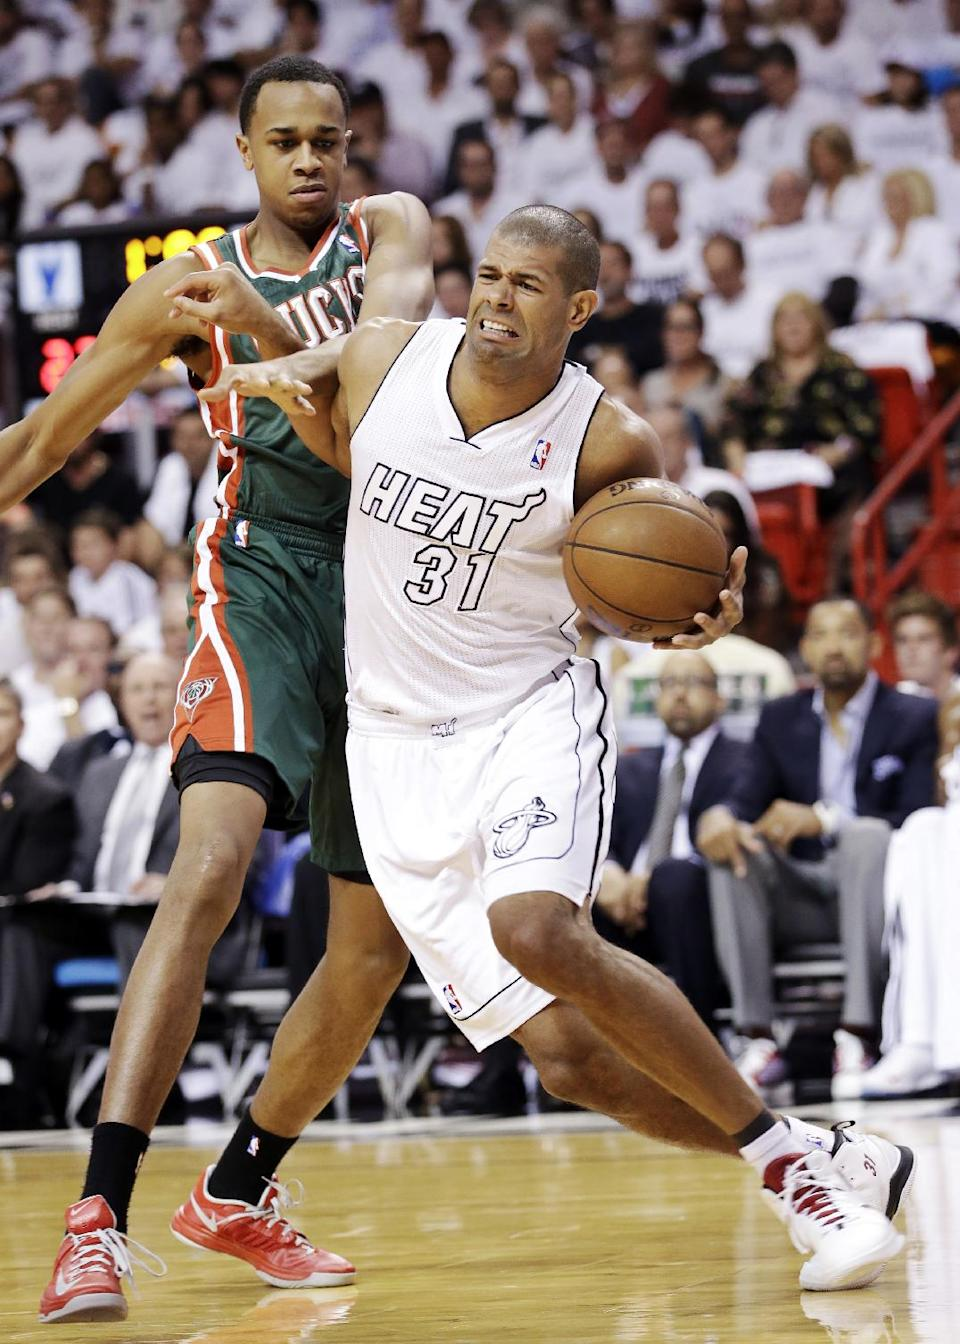 Milwaukee Bucks forward John Henson, left, fouls Miami Heat forward Shane Battier (31) as he goes up for a shot during the first half of Game 2 in their first-round NBA basketball playoff series, Tuesday, April 23, 2013 in Miami. (AP Photo/Wilfredo Lee)